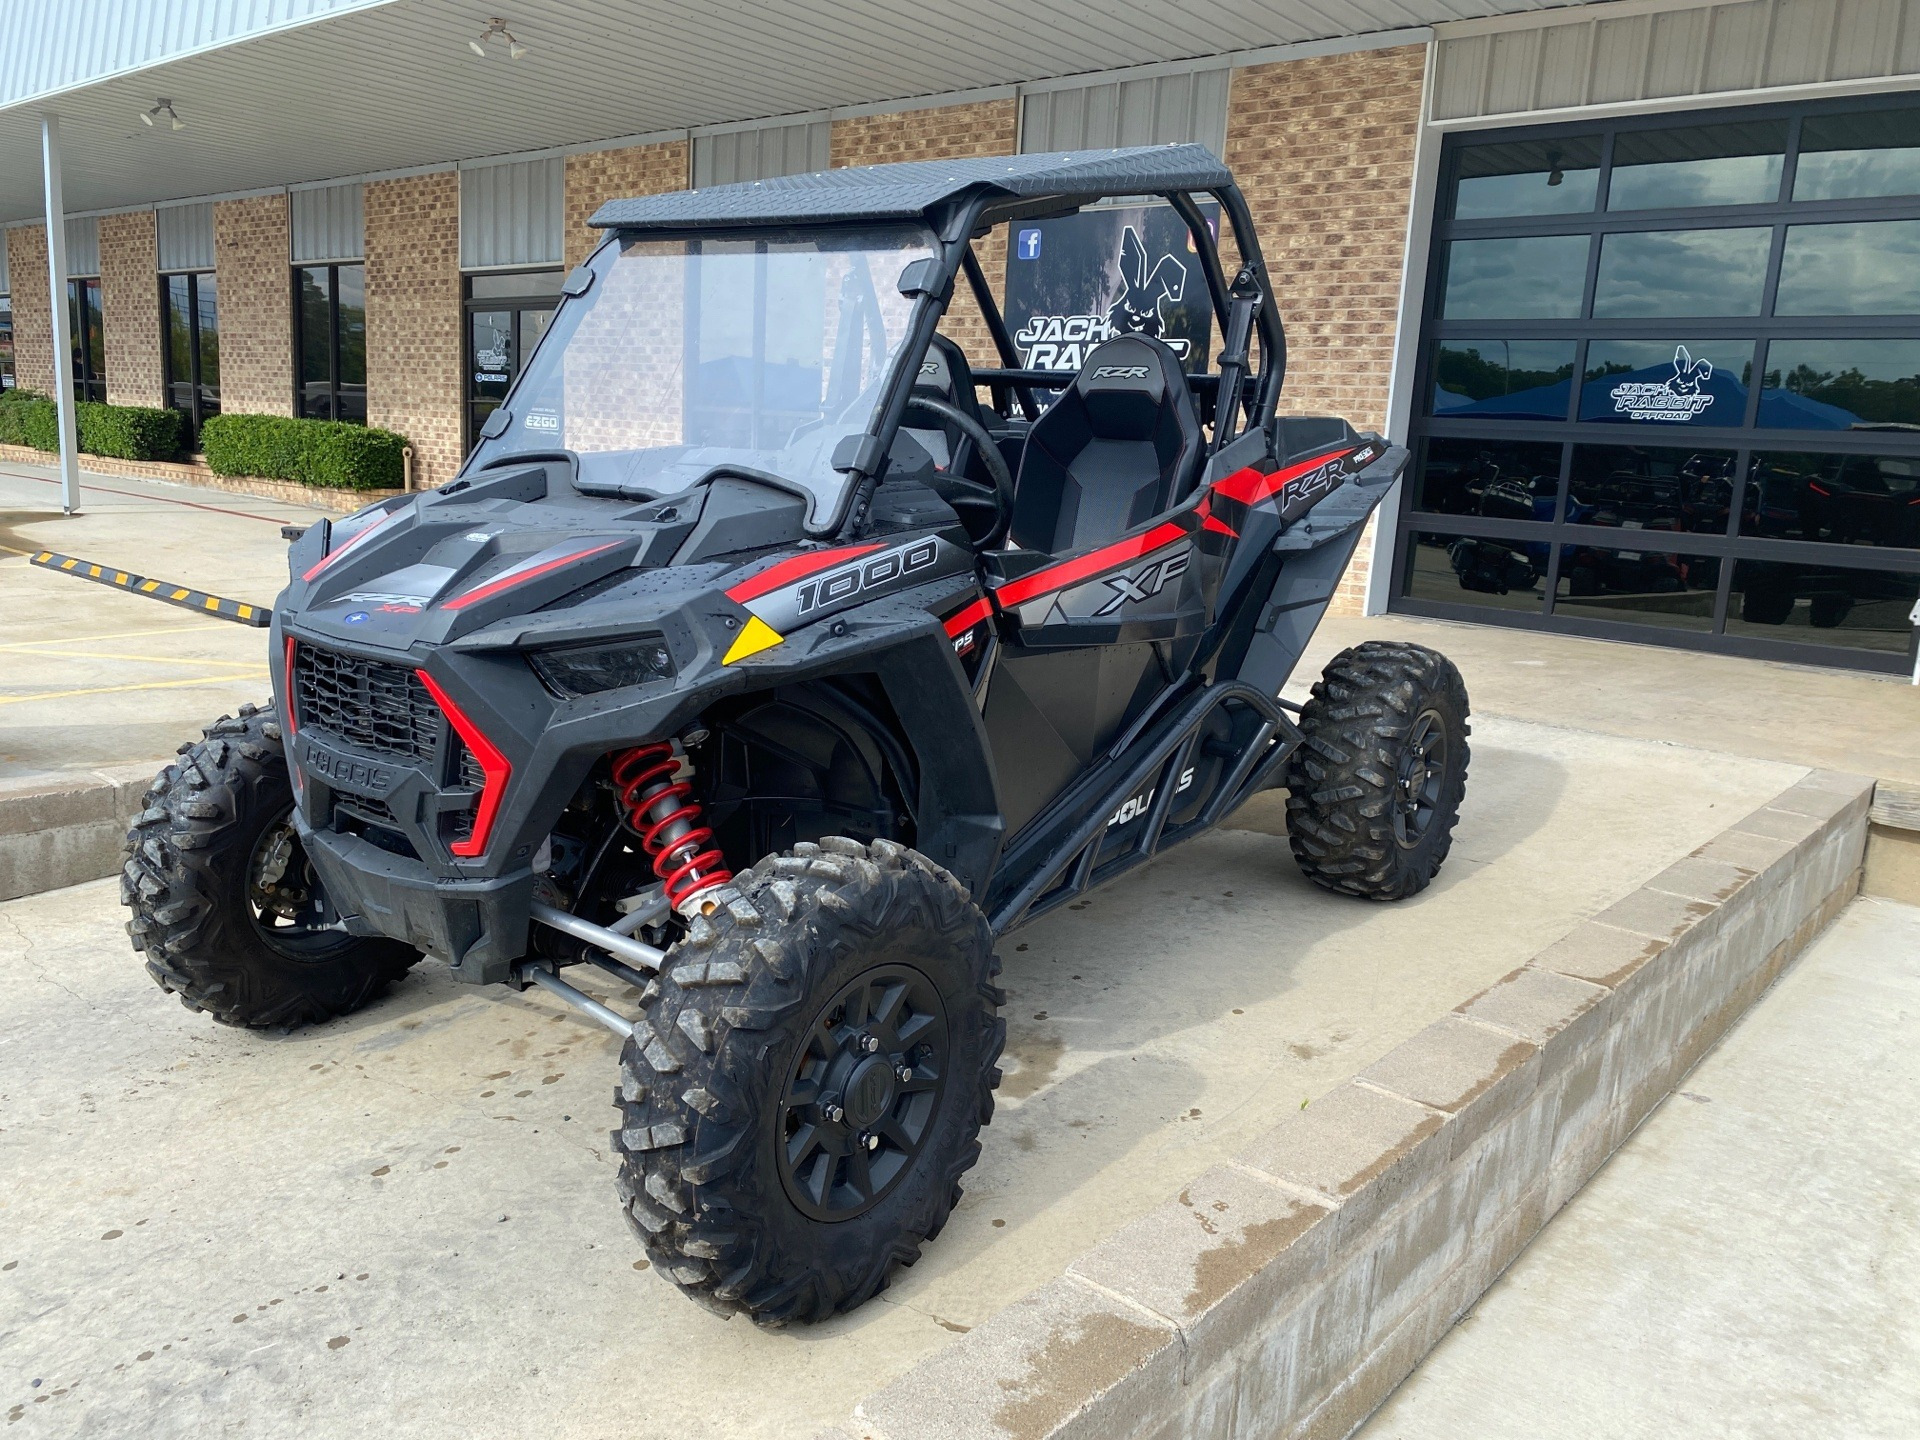 2019 Polaris RZR XP 1000 in Marshall, Texas - Photo 2